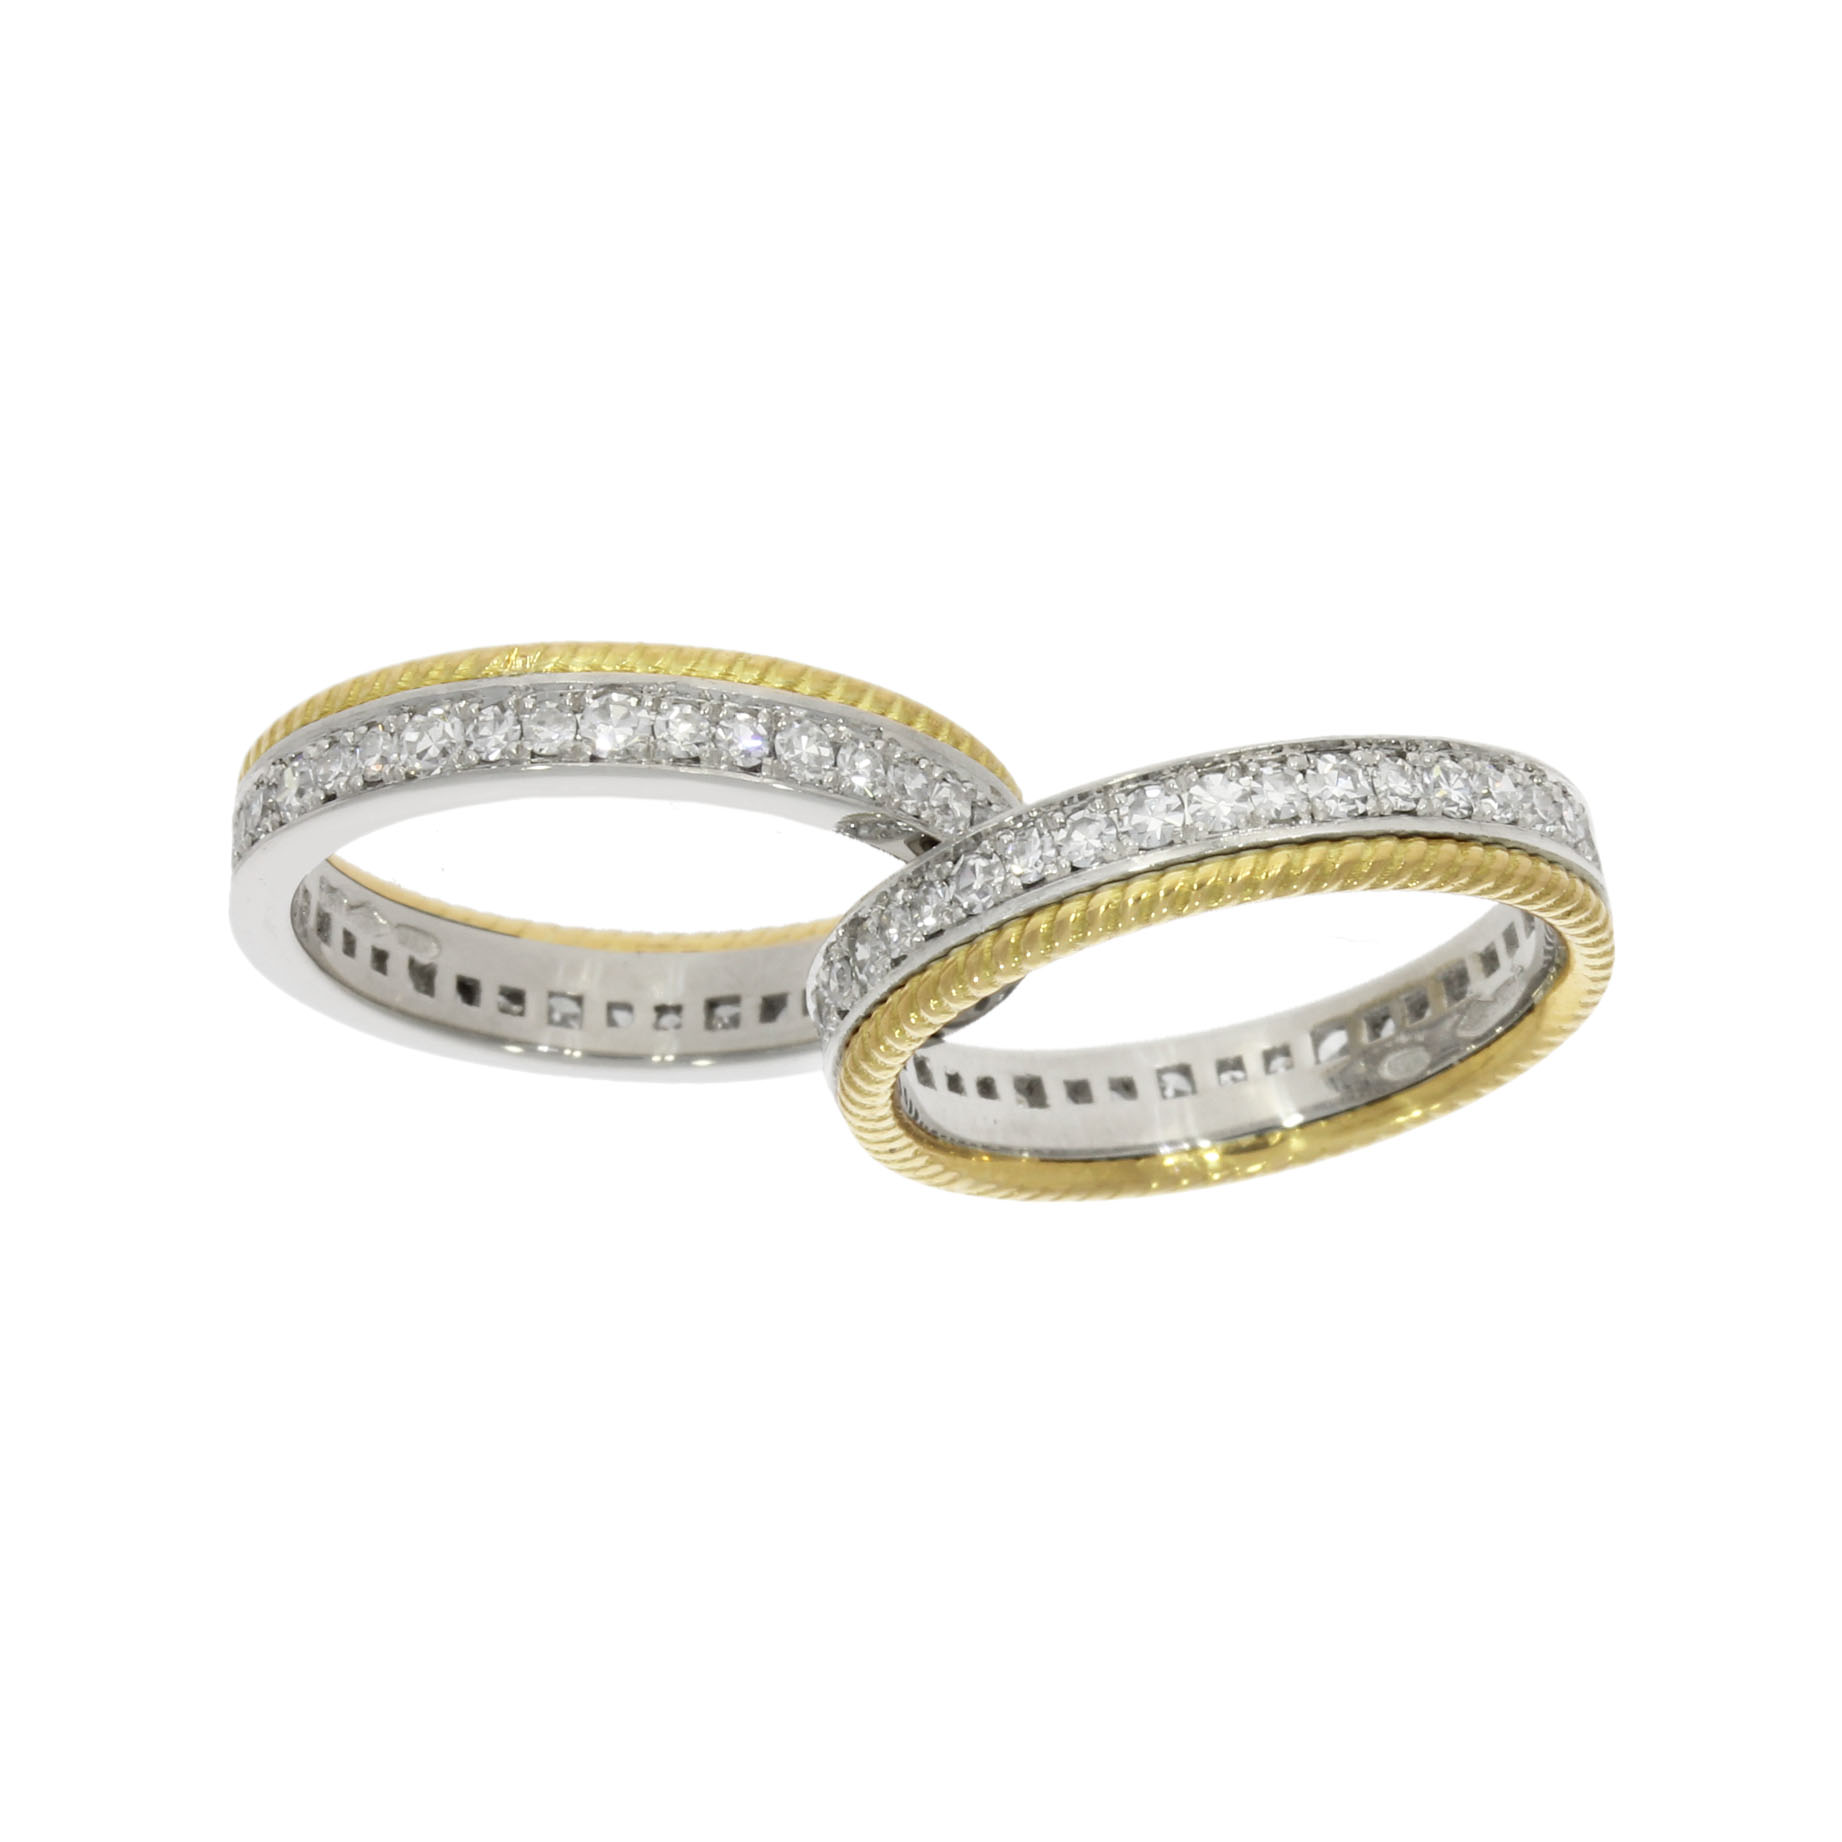 one ring splits in half shared join together clever wedding eternity ring set lesbian queer gay